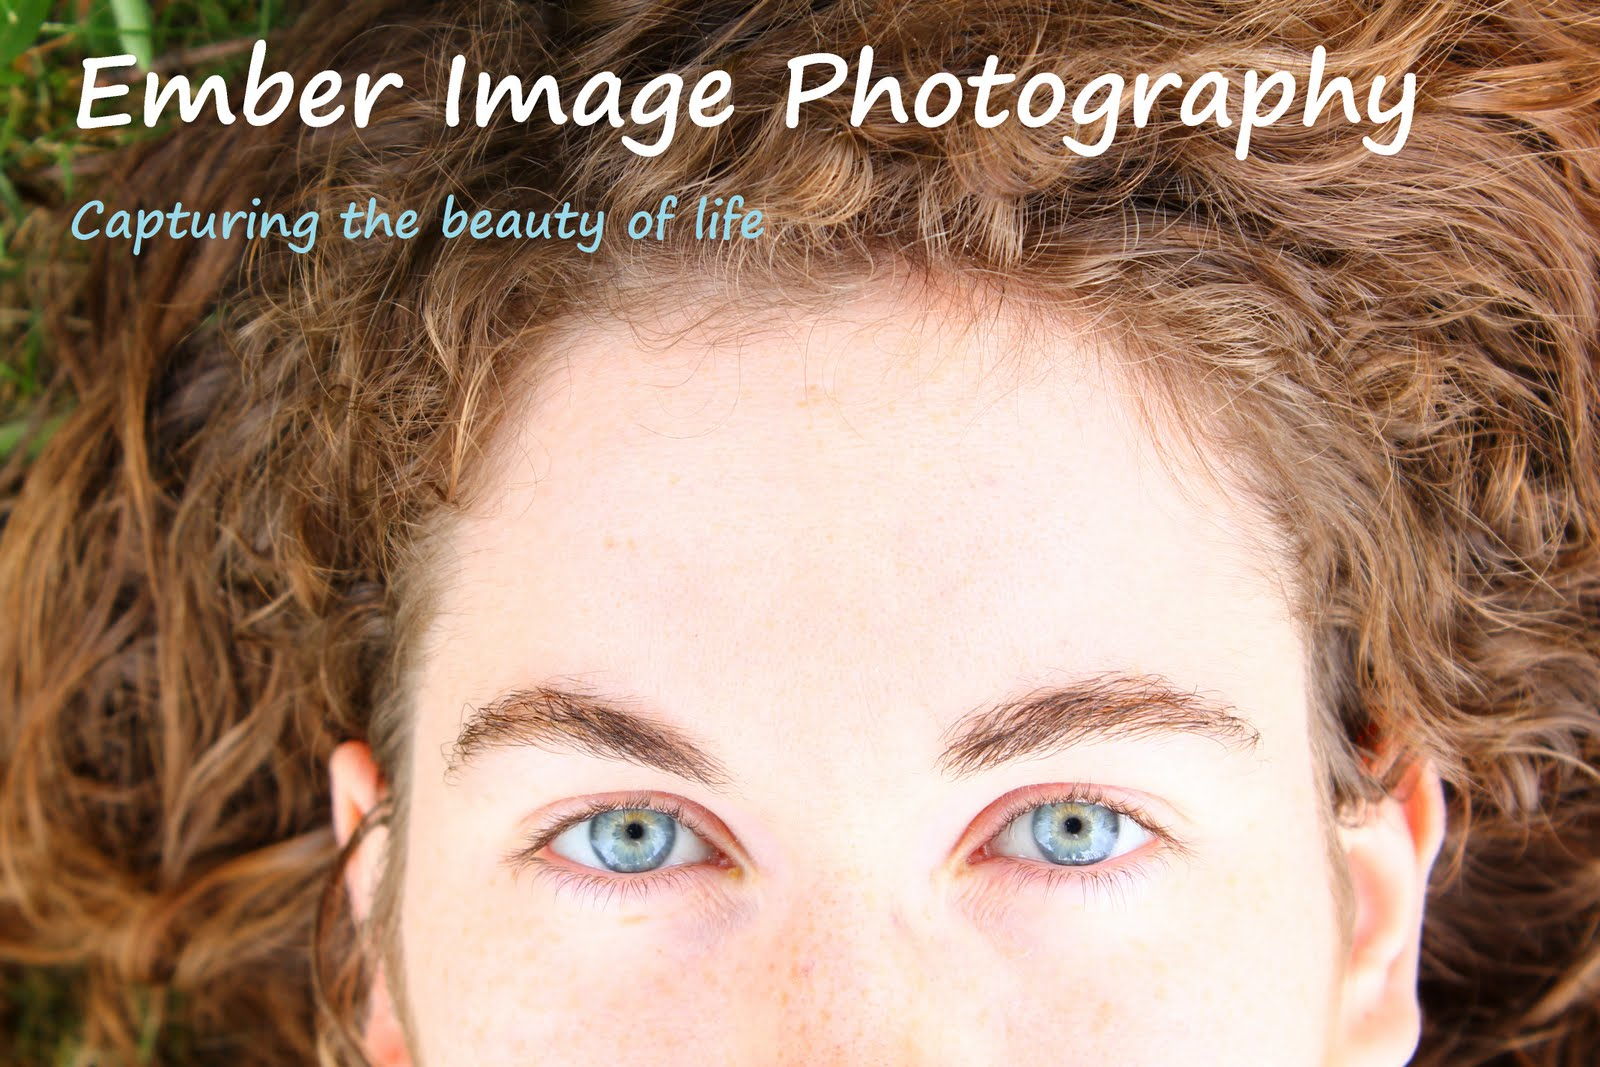 Ember Image Photography